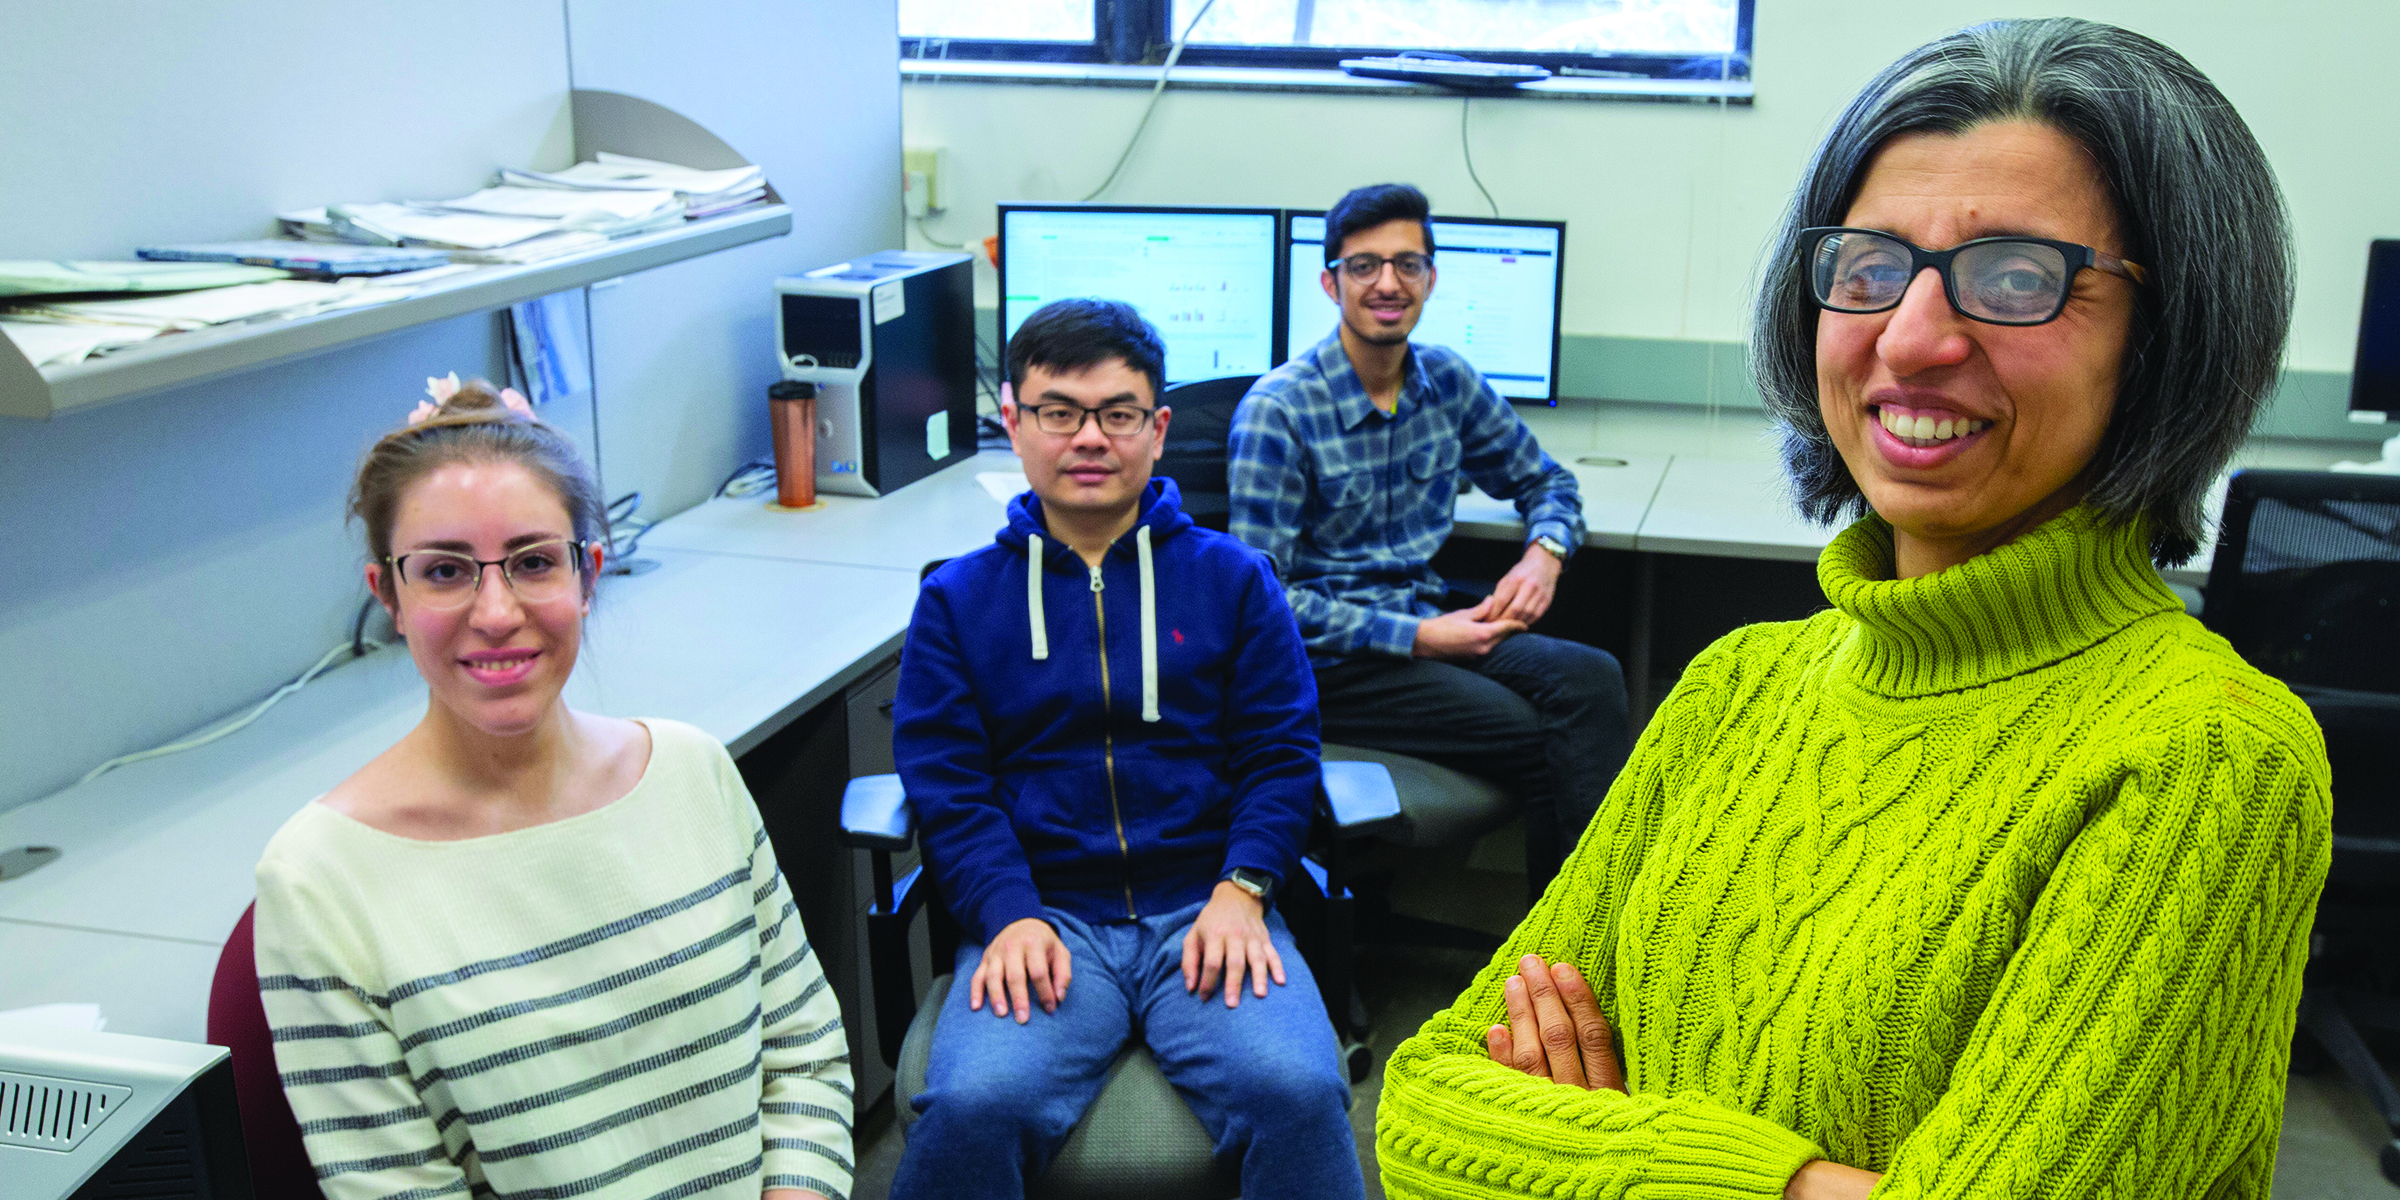 Seyedehsara Nayer, Han Guo and Vahid Daneshpajooh, all graduate students in electrical and computer engineering, and Namrata Vaswani, professor of electrical and computer engineering